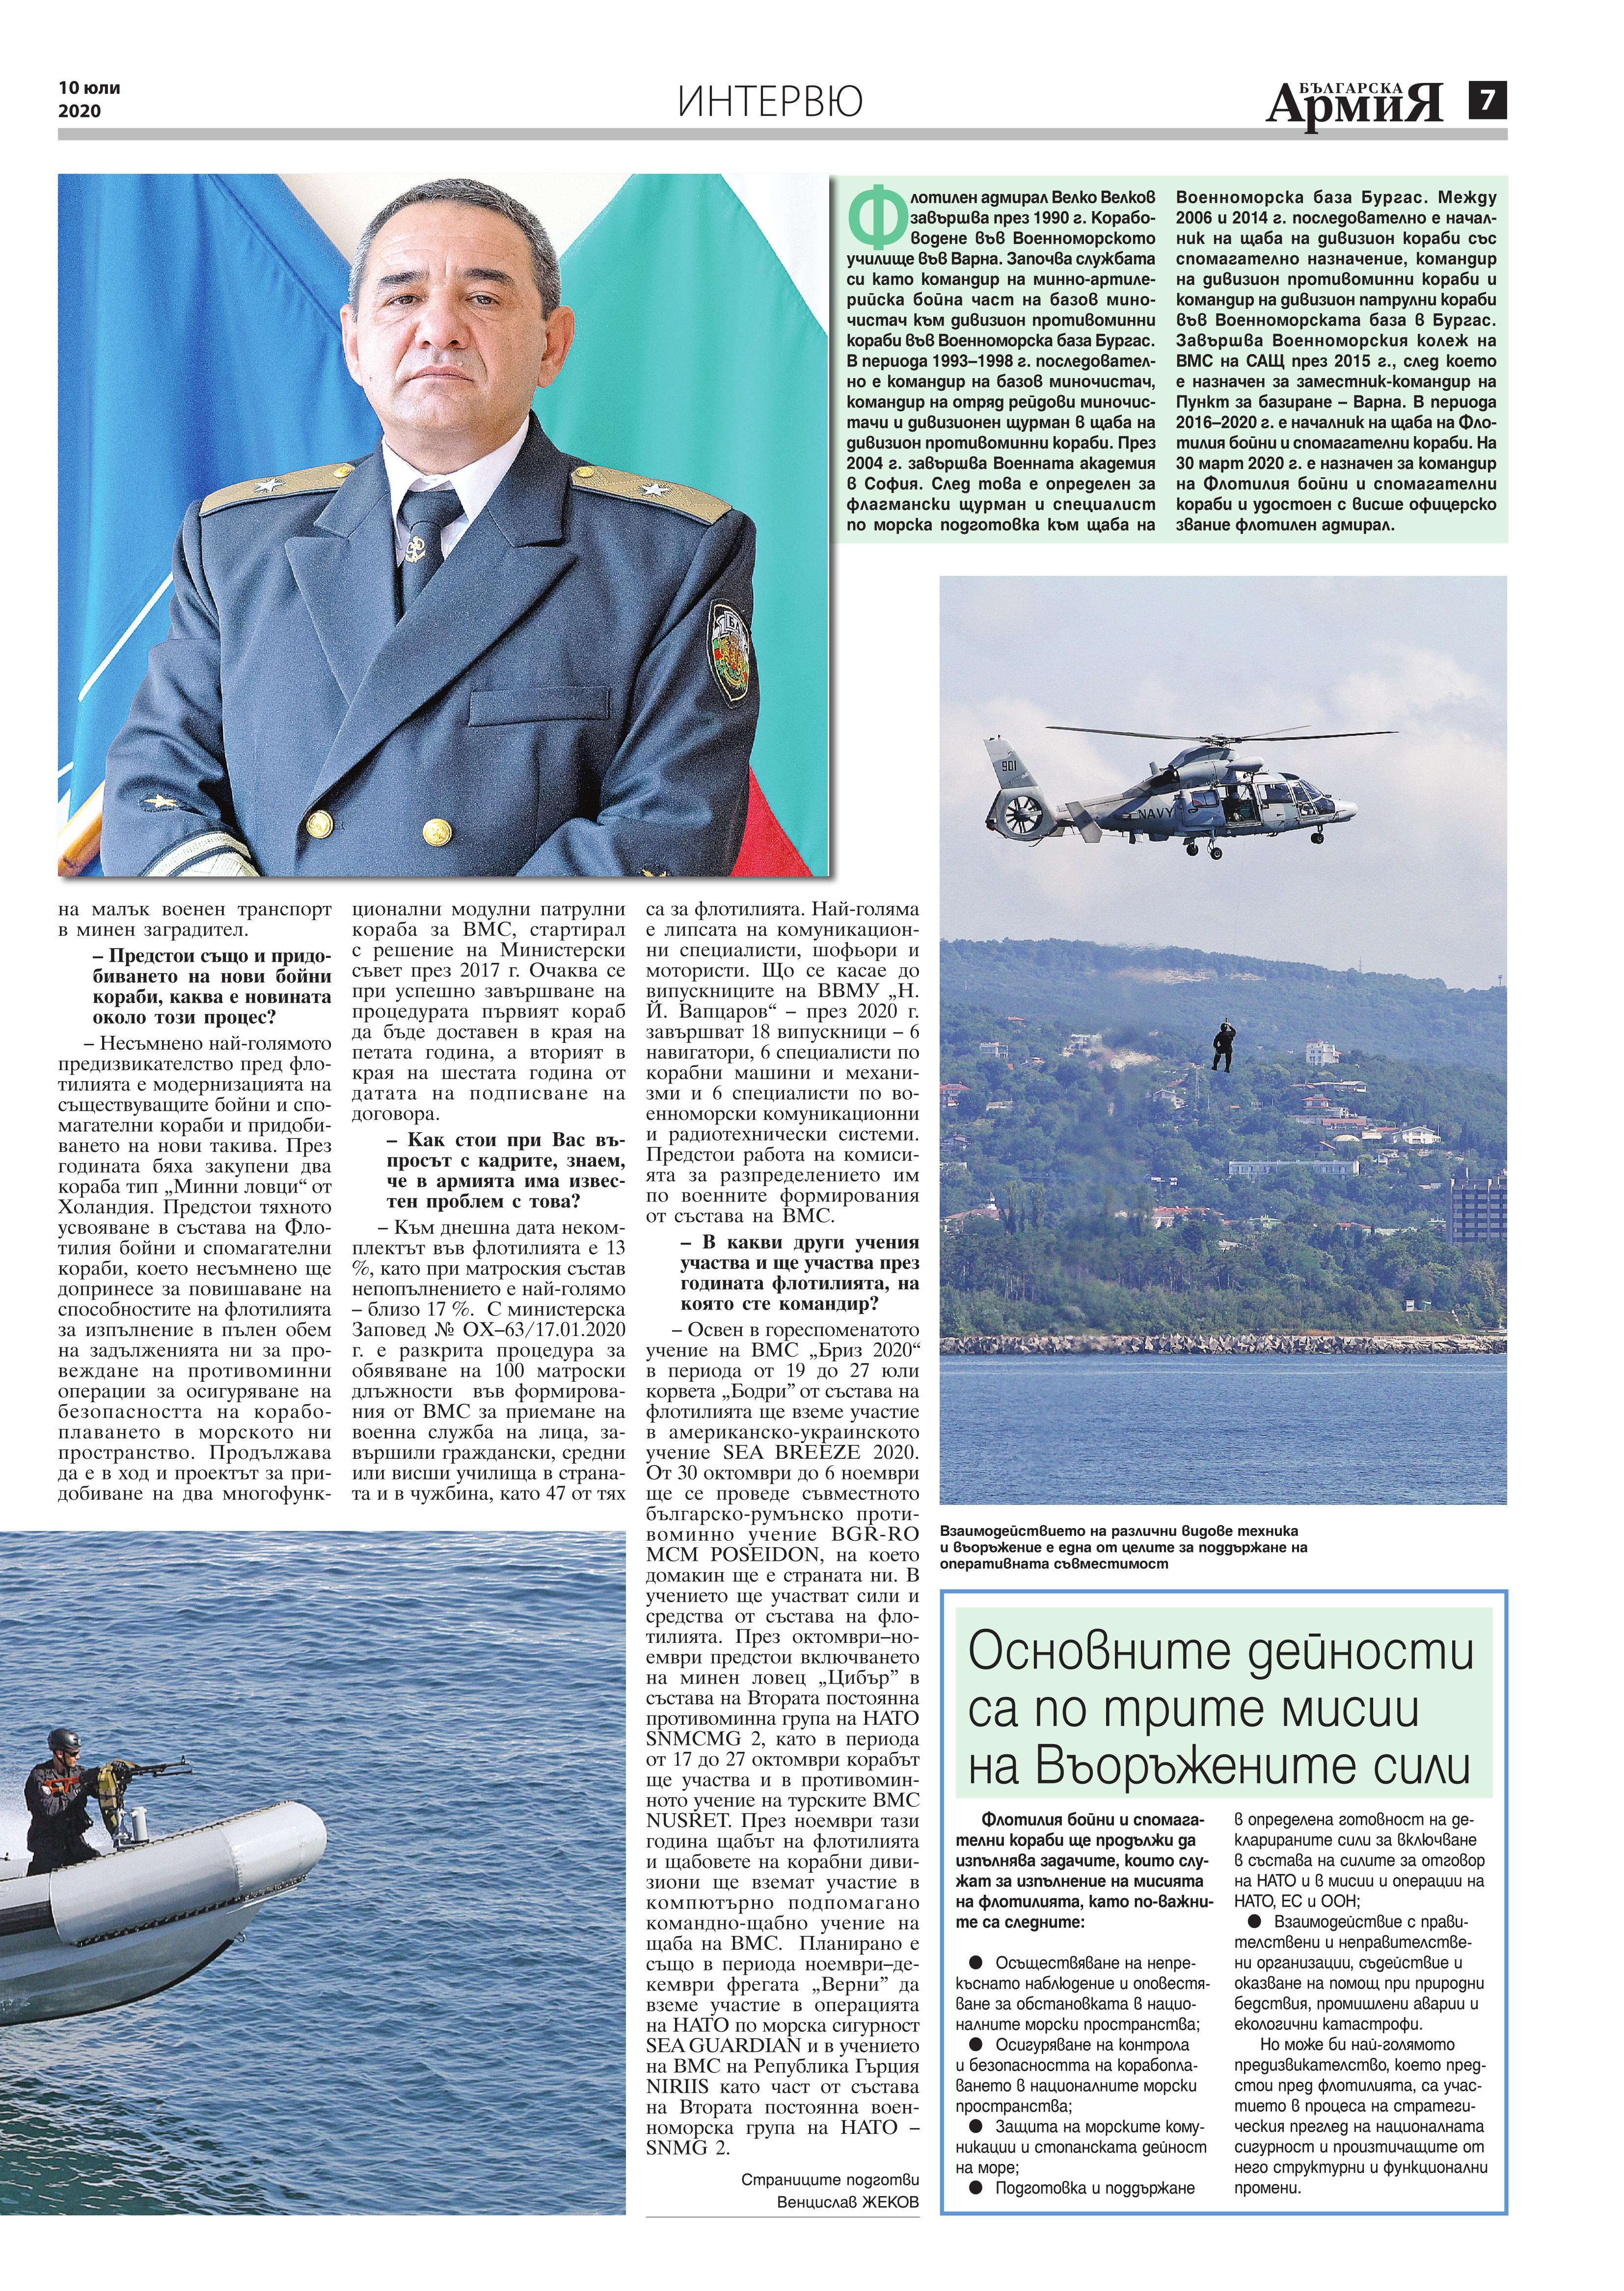 https://www.armymedia.bg/wp-content/uploads/2015/06/07.page1_-143.jpg